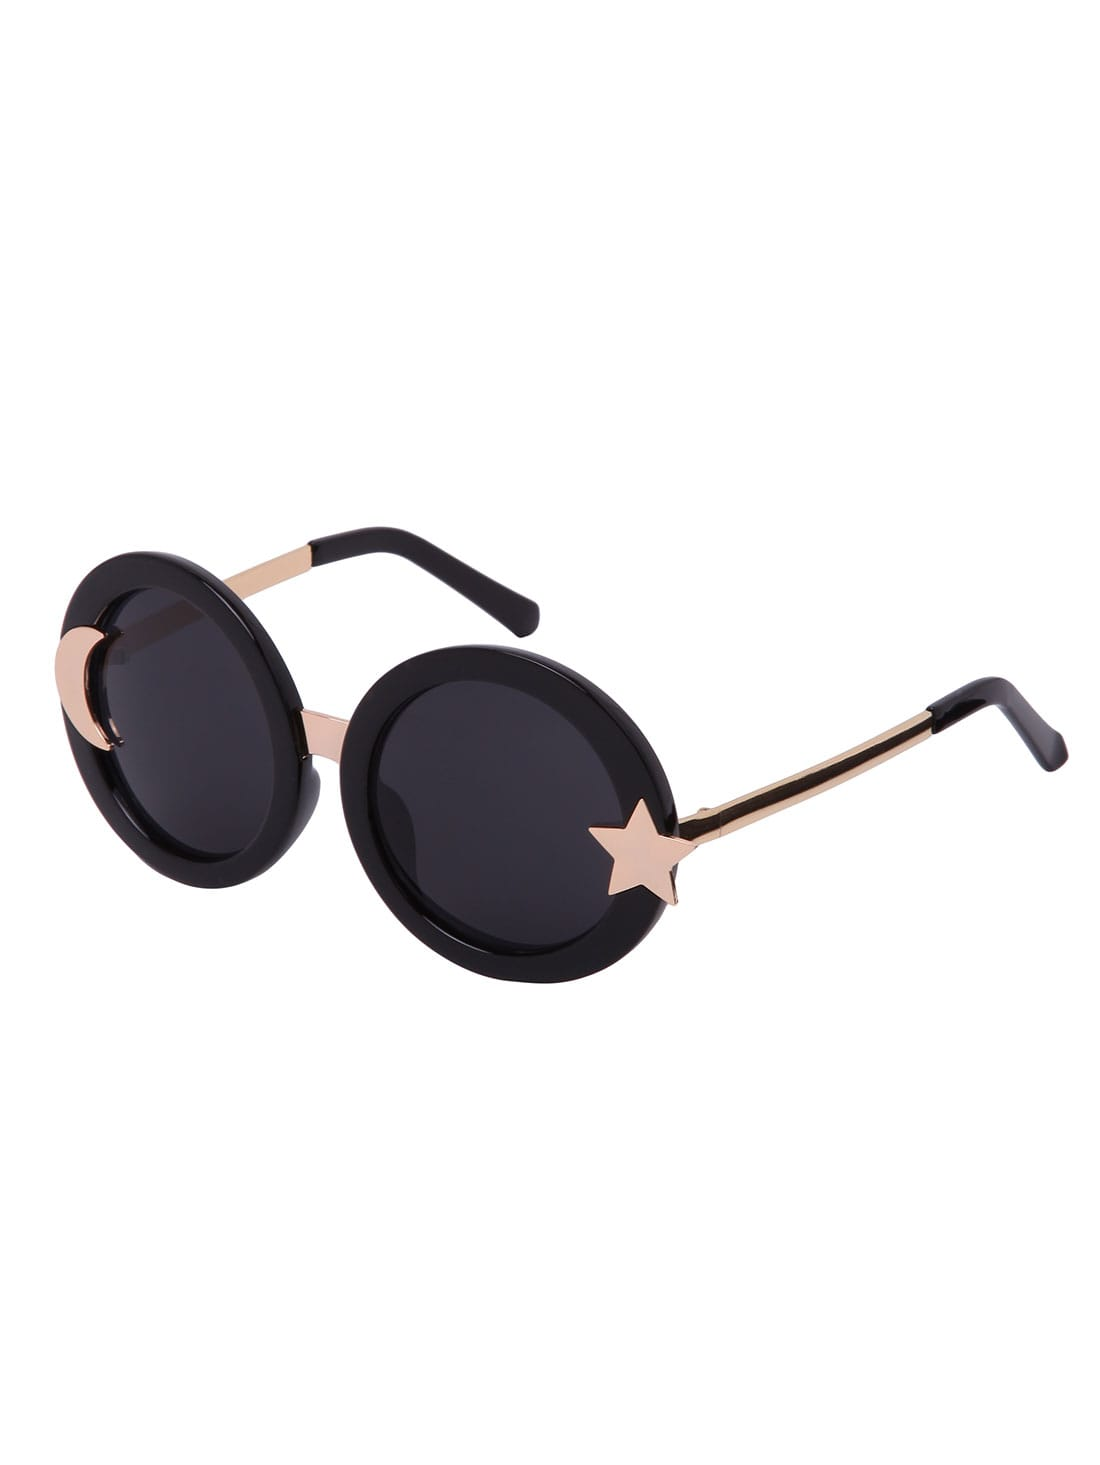 be9e41c9bec8 Ray Ban Sunglasses Discount Sunglasses In Round Rock Outlet Center ...